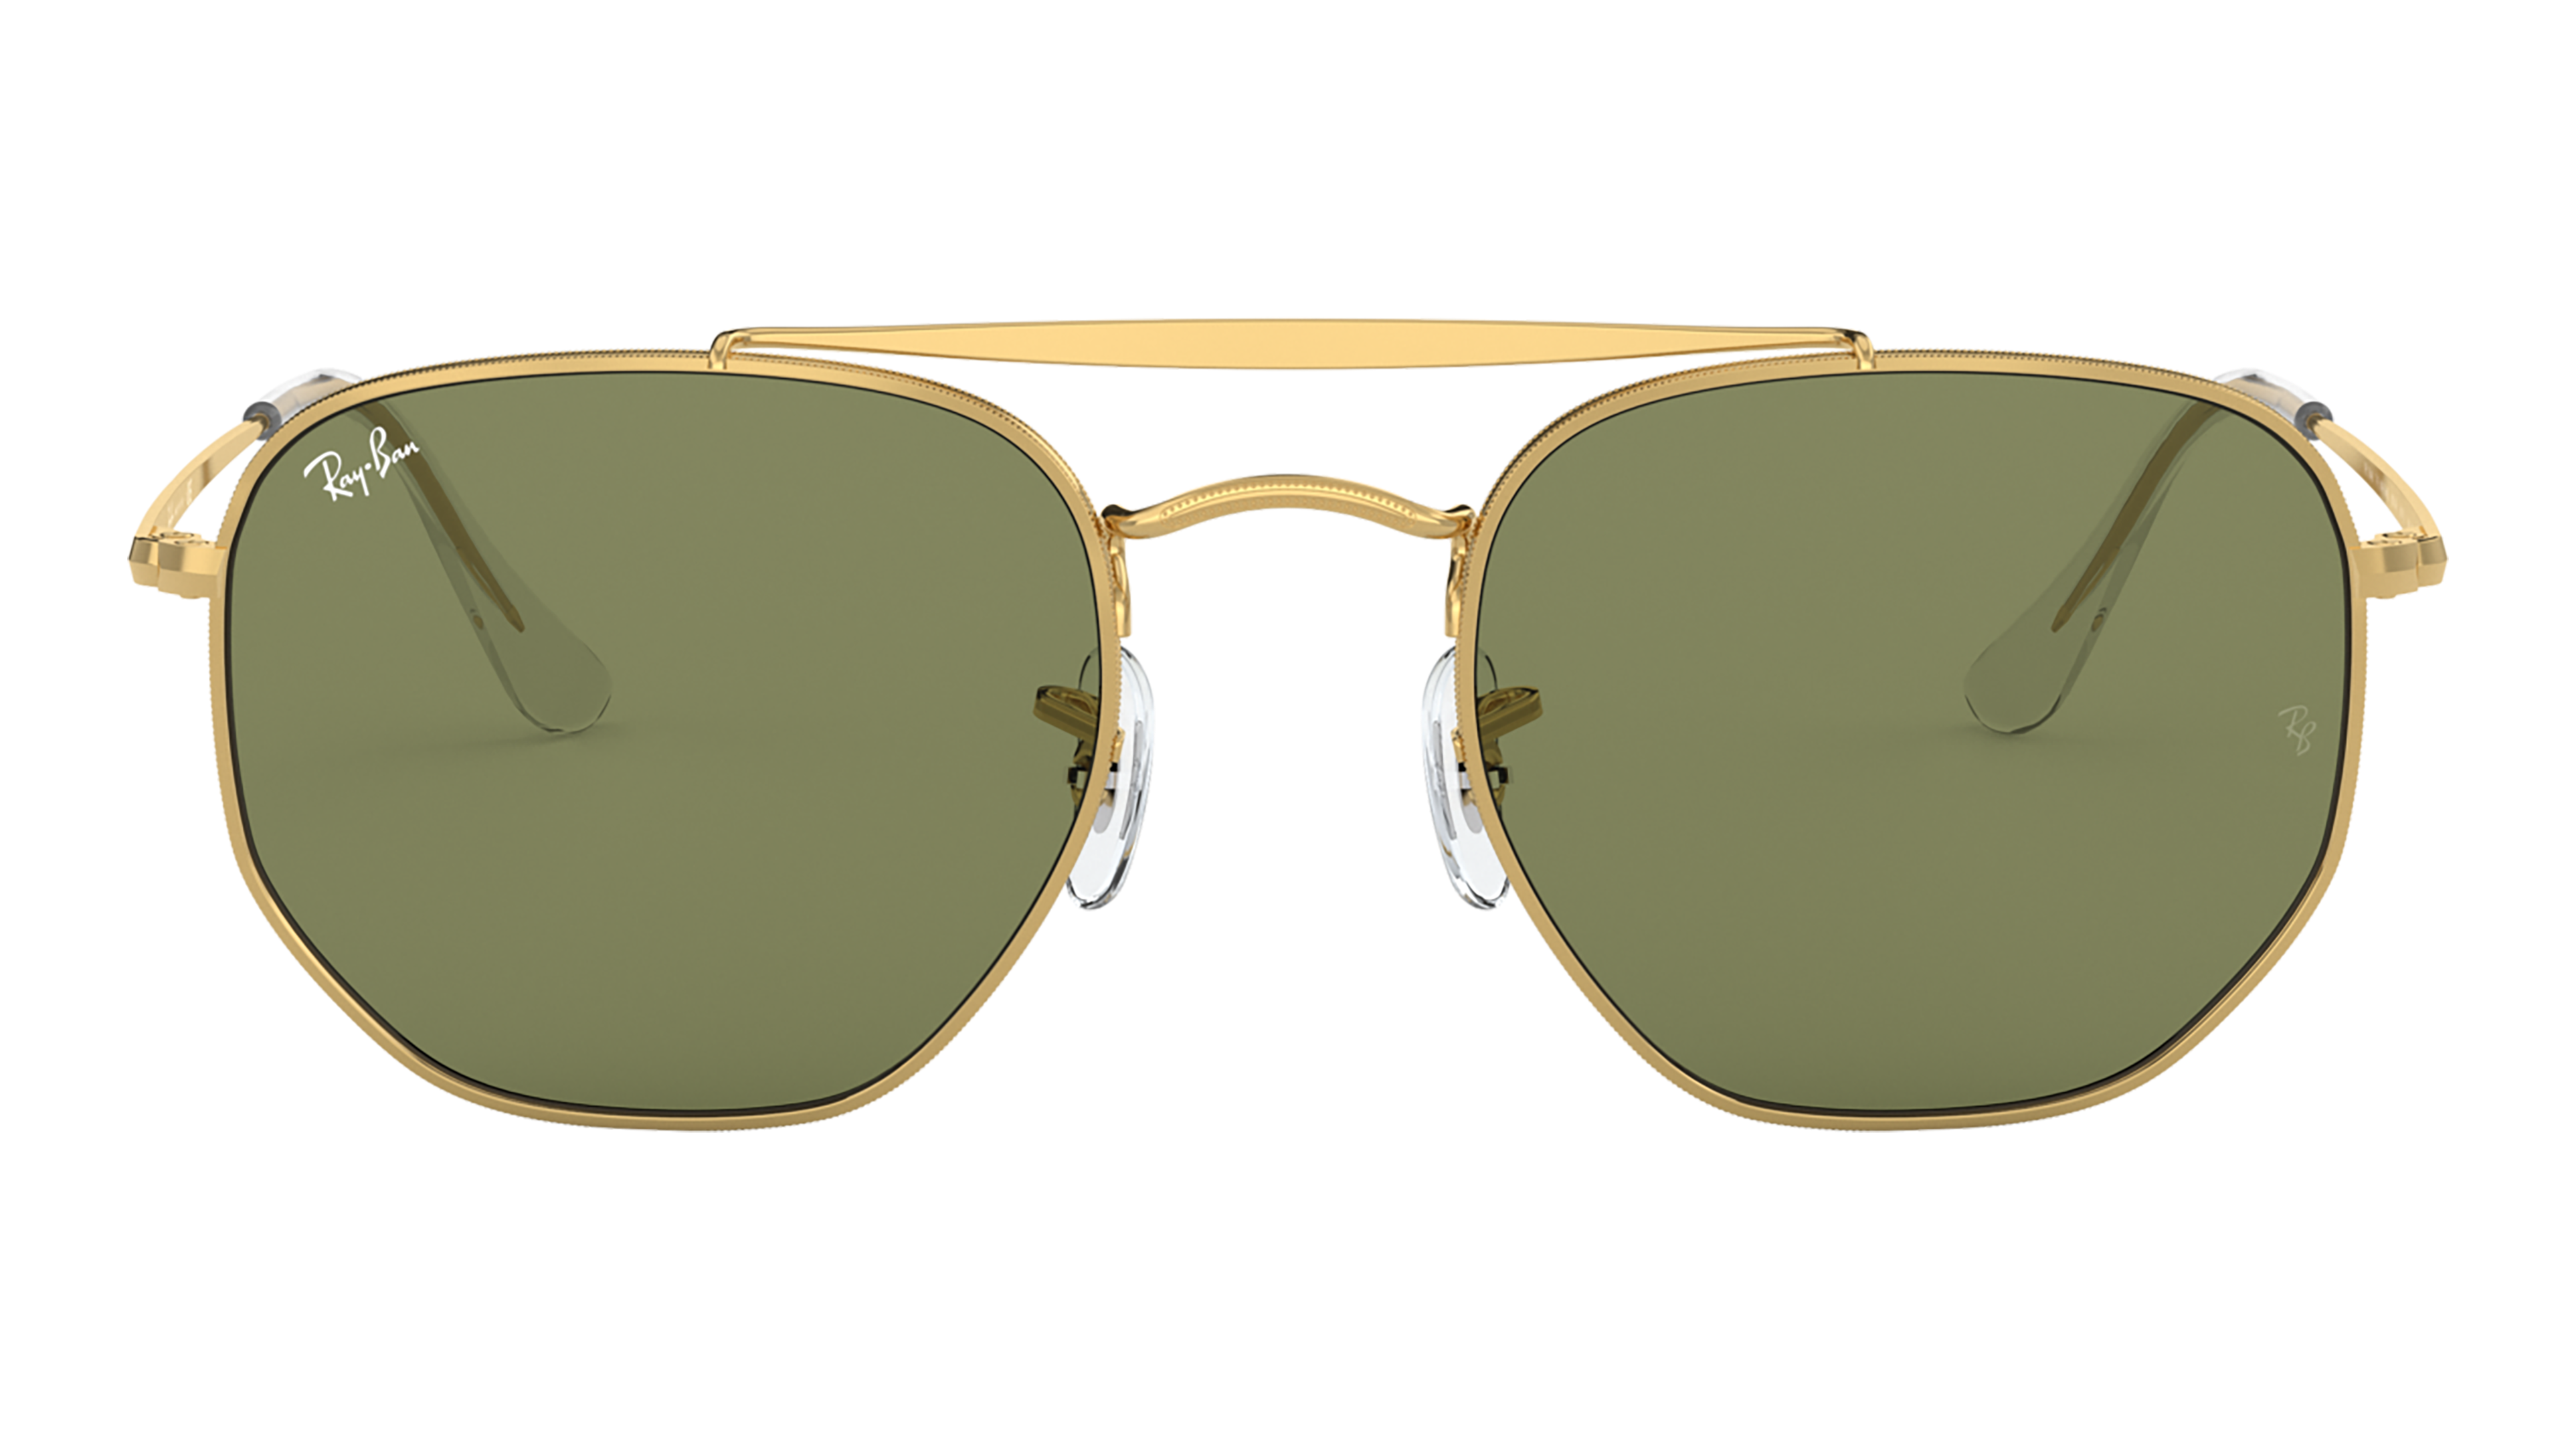 Front Ray-Ban Ray-Ban 0RB3648 001/4E 54/21 Goud/Groen